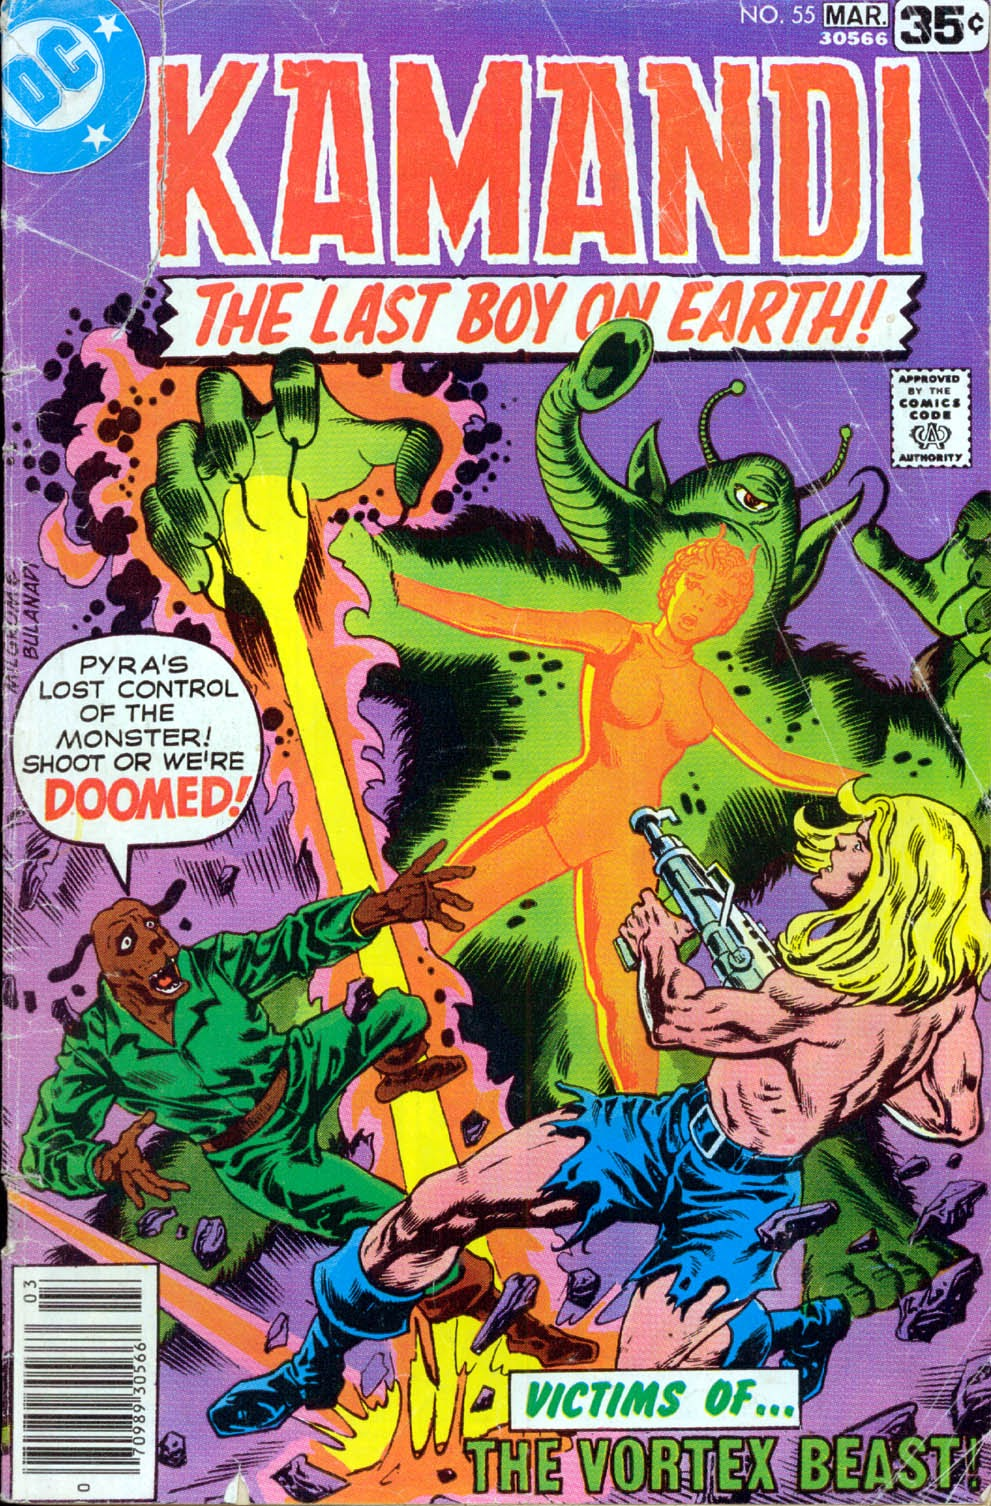 Kamandi, The Last Boy On Earth issue 55 - Page 1